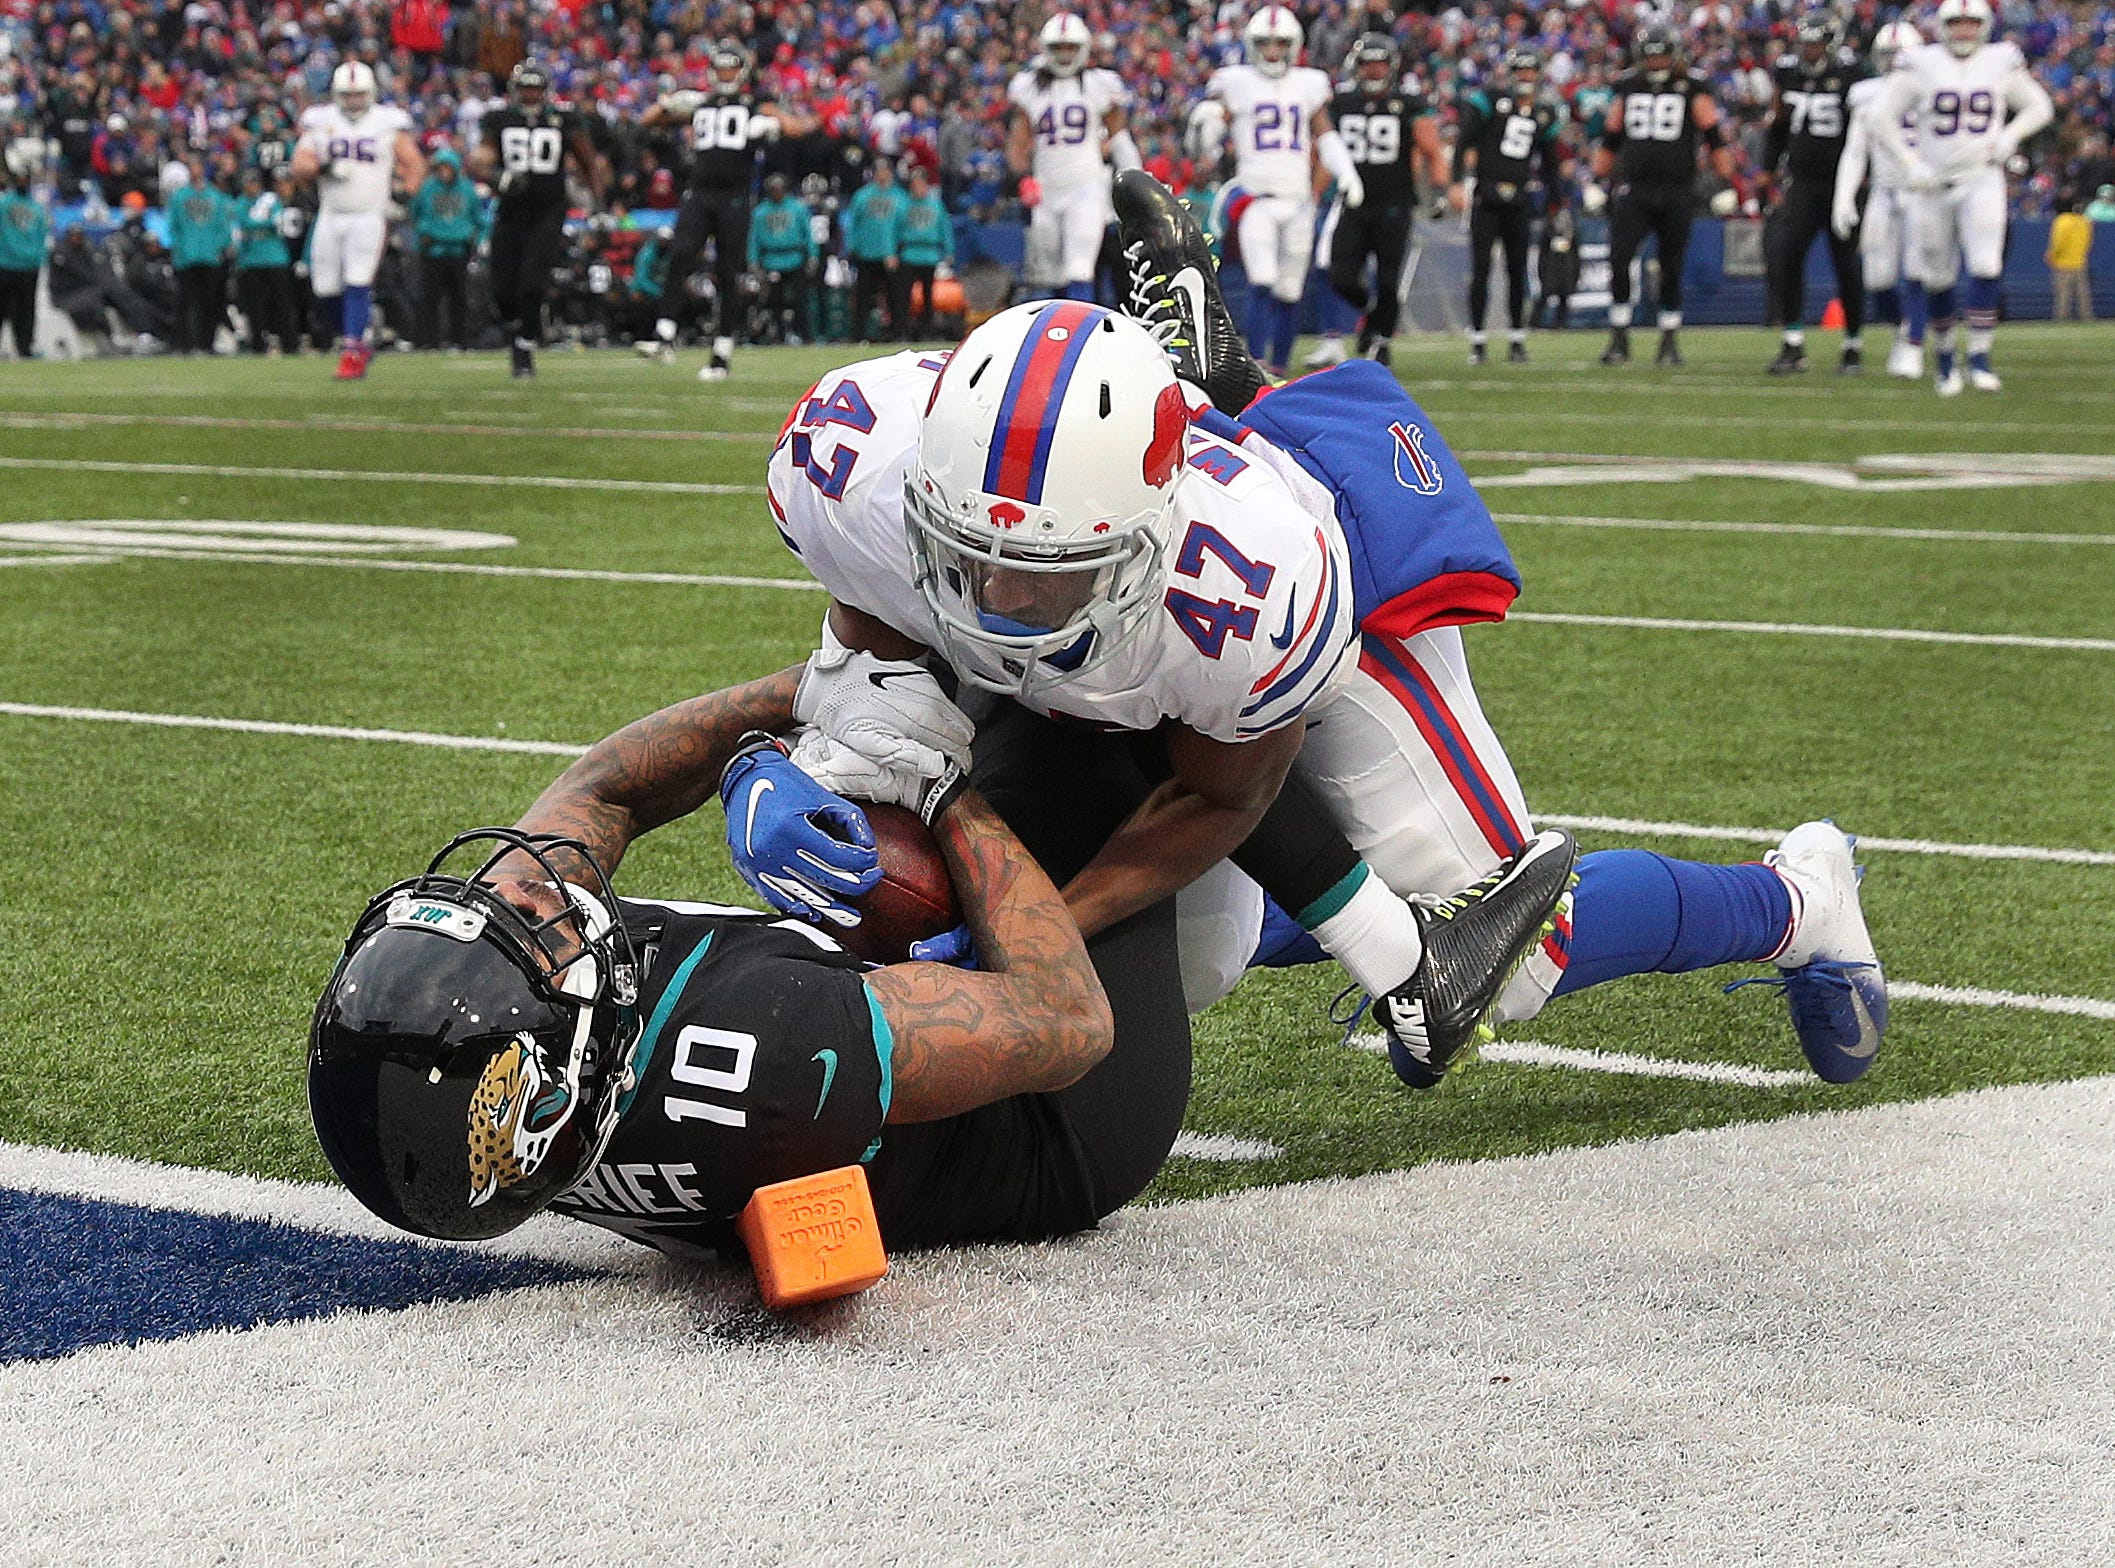 Bills Levi Wallace battles with Jaguars receiver Donte Moncrief for possession.  The pass was ruled a catch with Moncrief down t the 1-yard line.